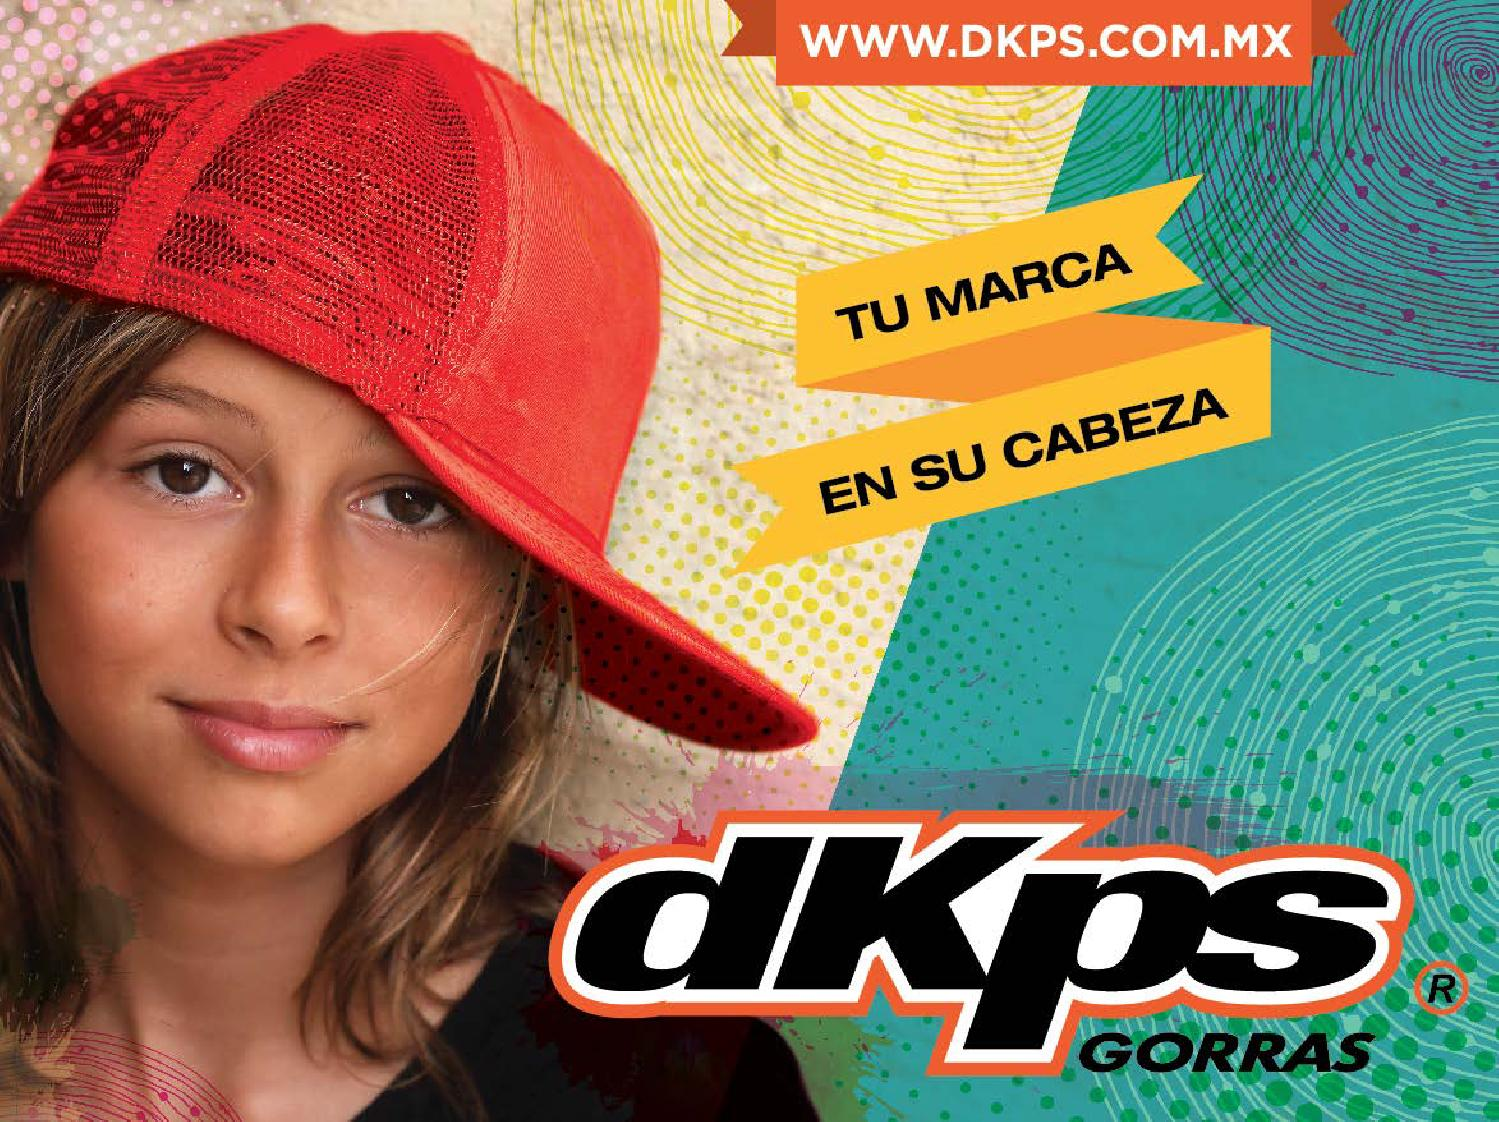 73c5e494b0c59 Catalogo gorras DKPS by CUELLO BLANCO DKPS MAYORK  queretaro playerasymas.com.mx - issuu